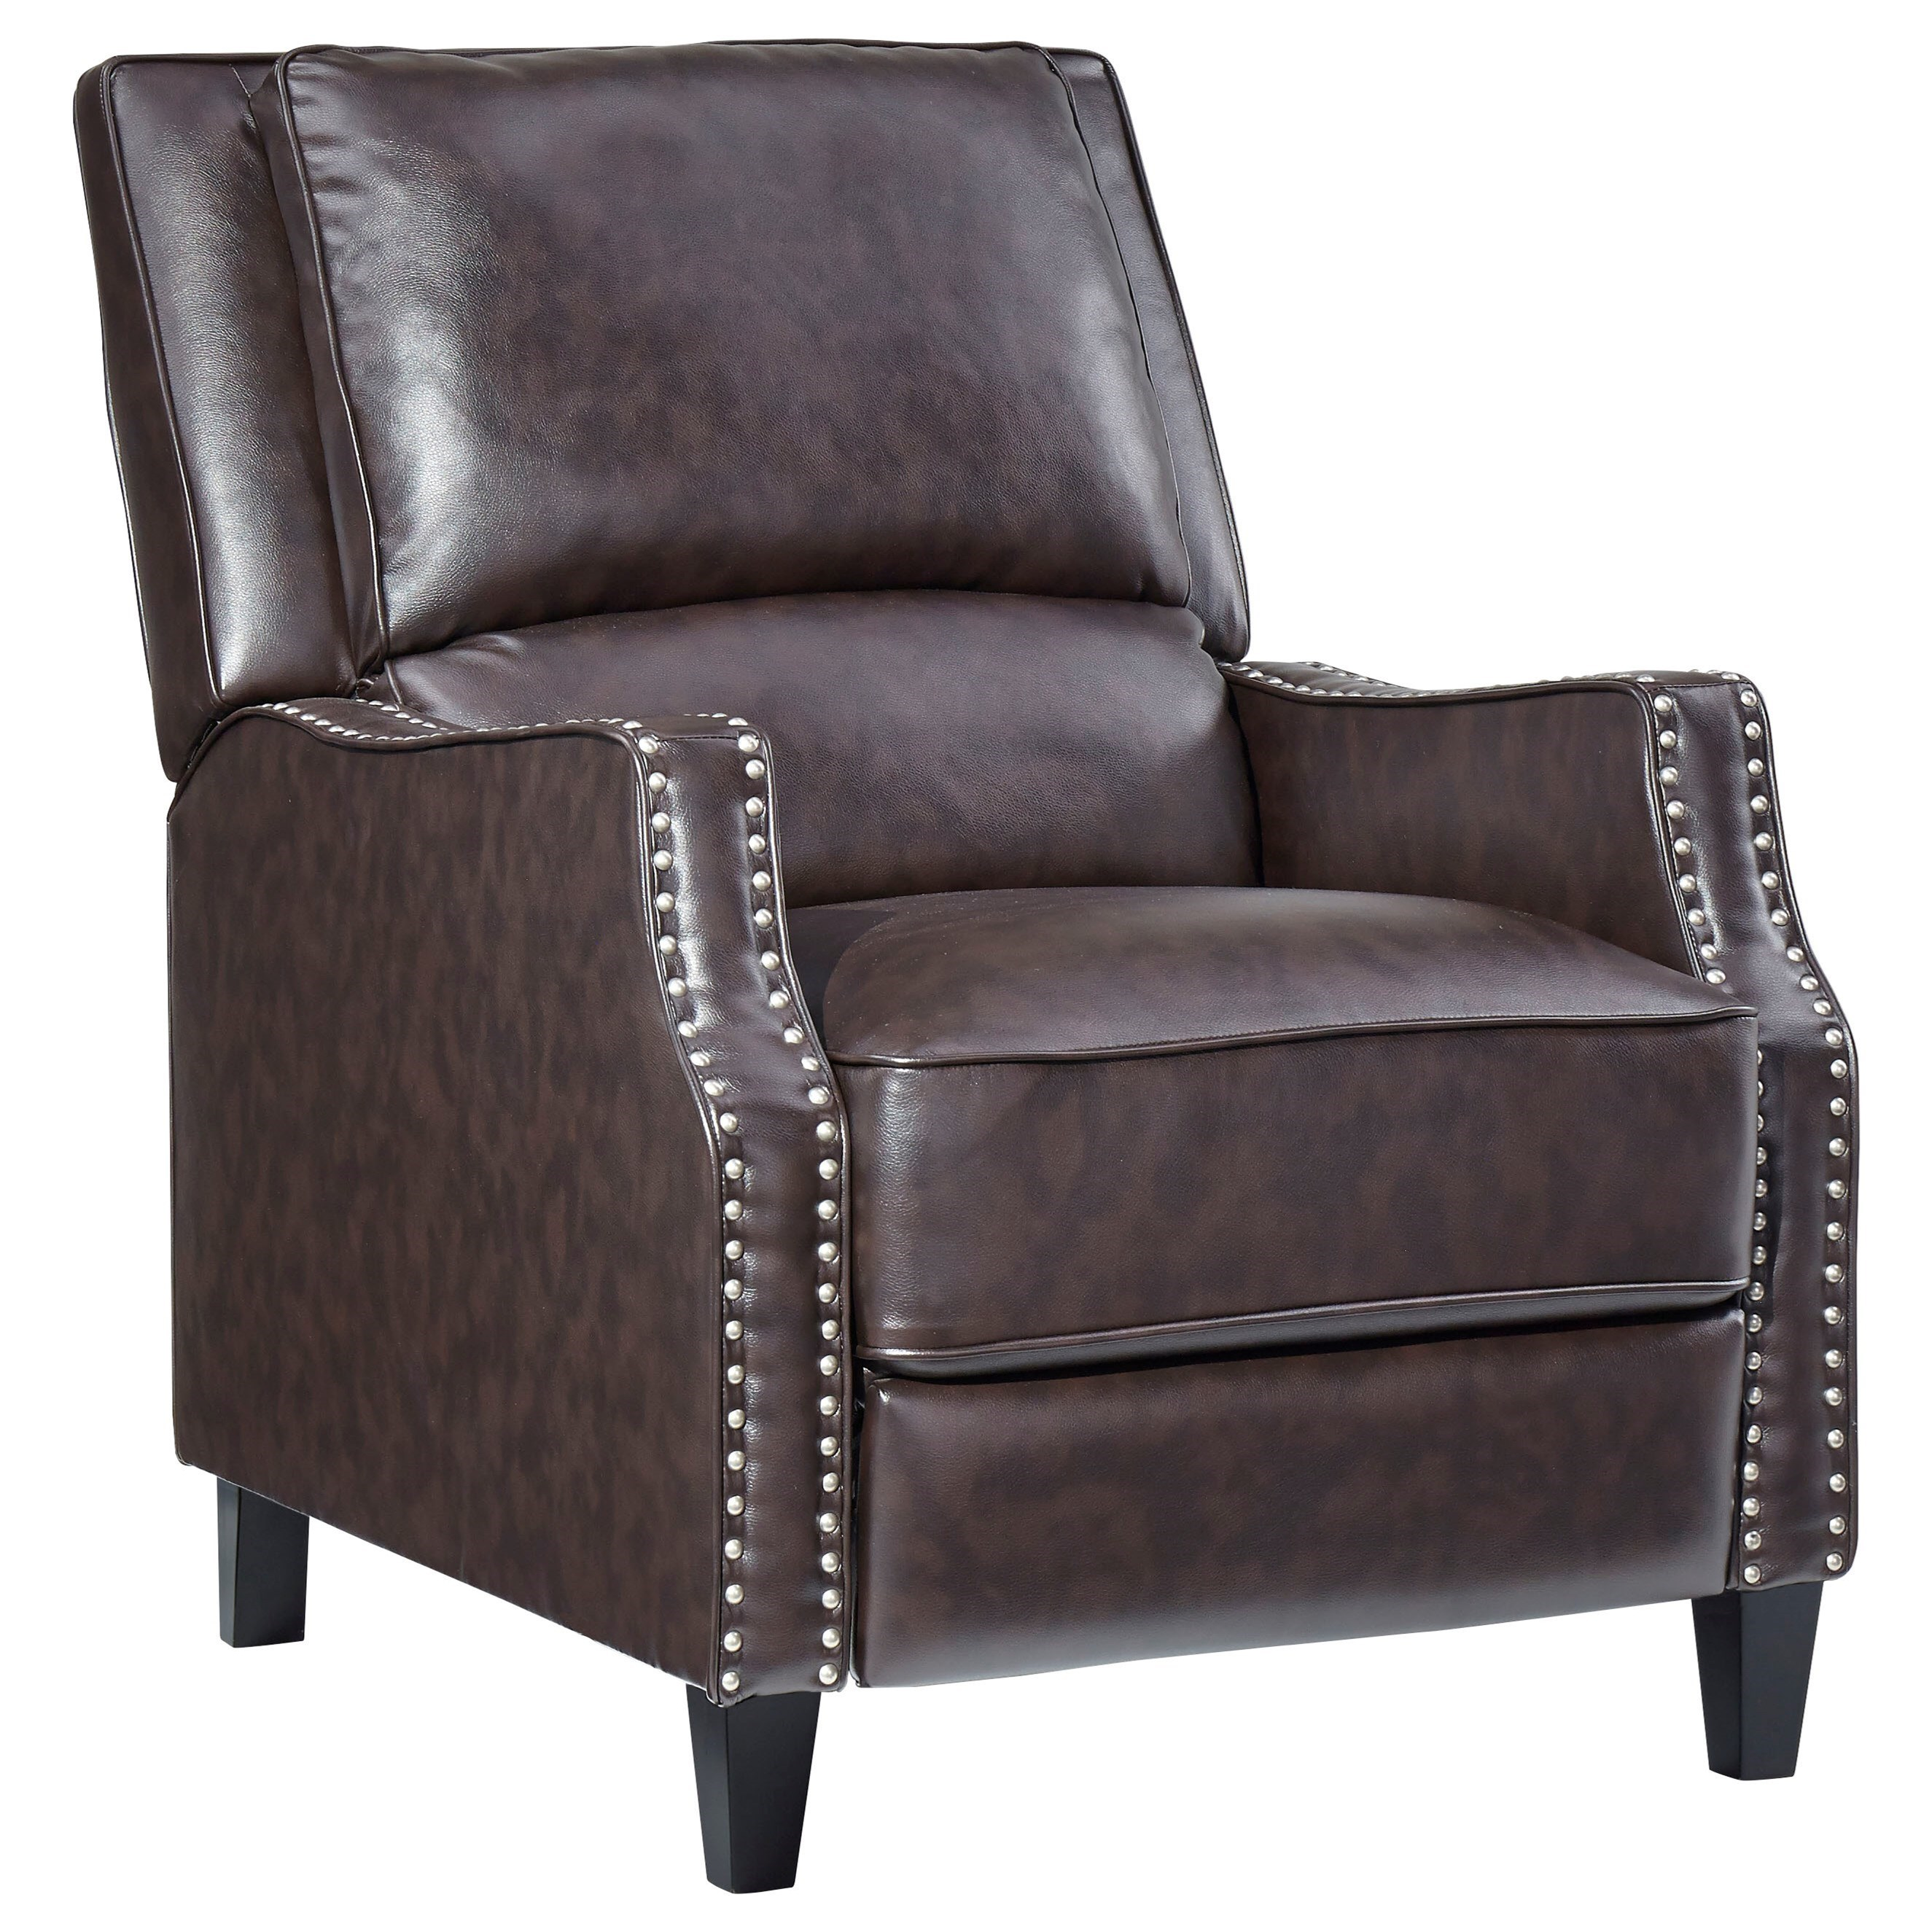 Standard Furniture Alston Recliner - Item Number: 4218833